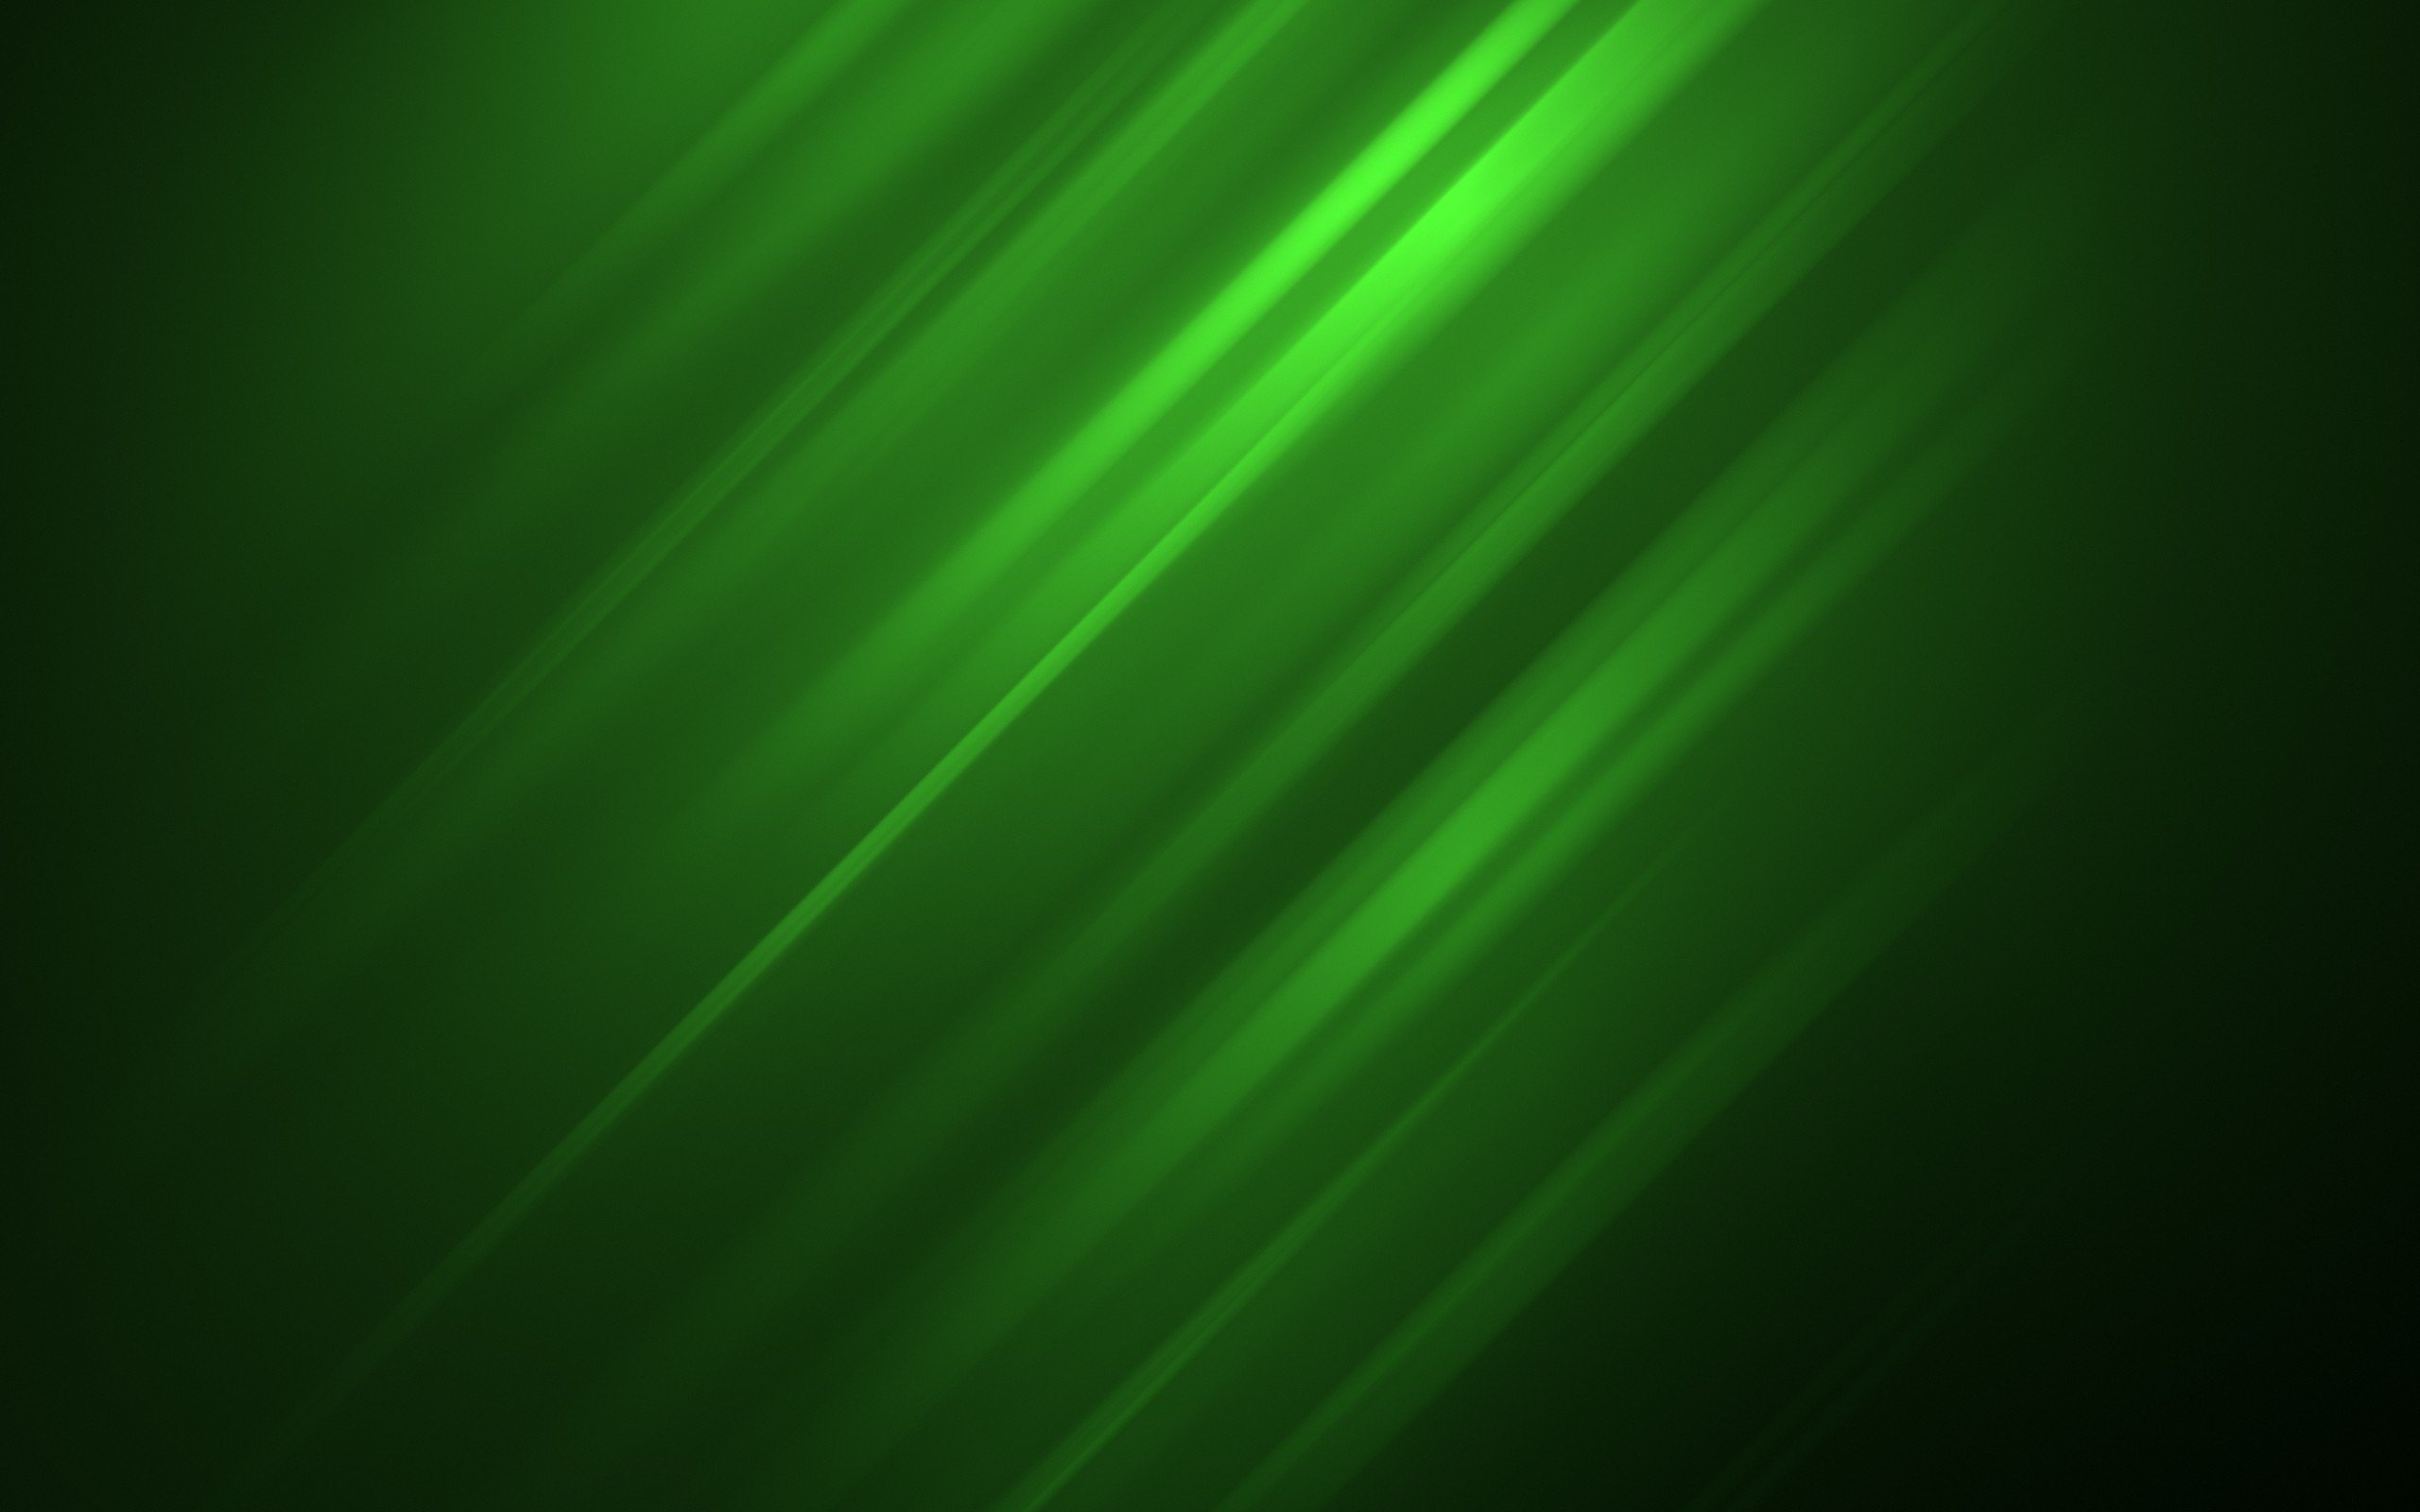 green backgrounds 2560x1600